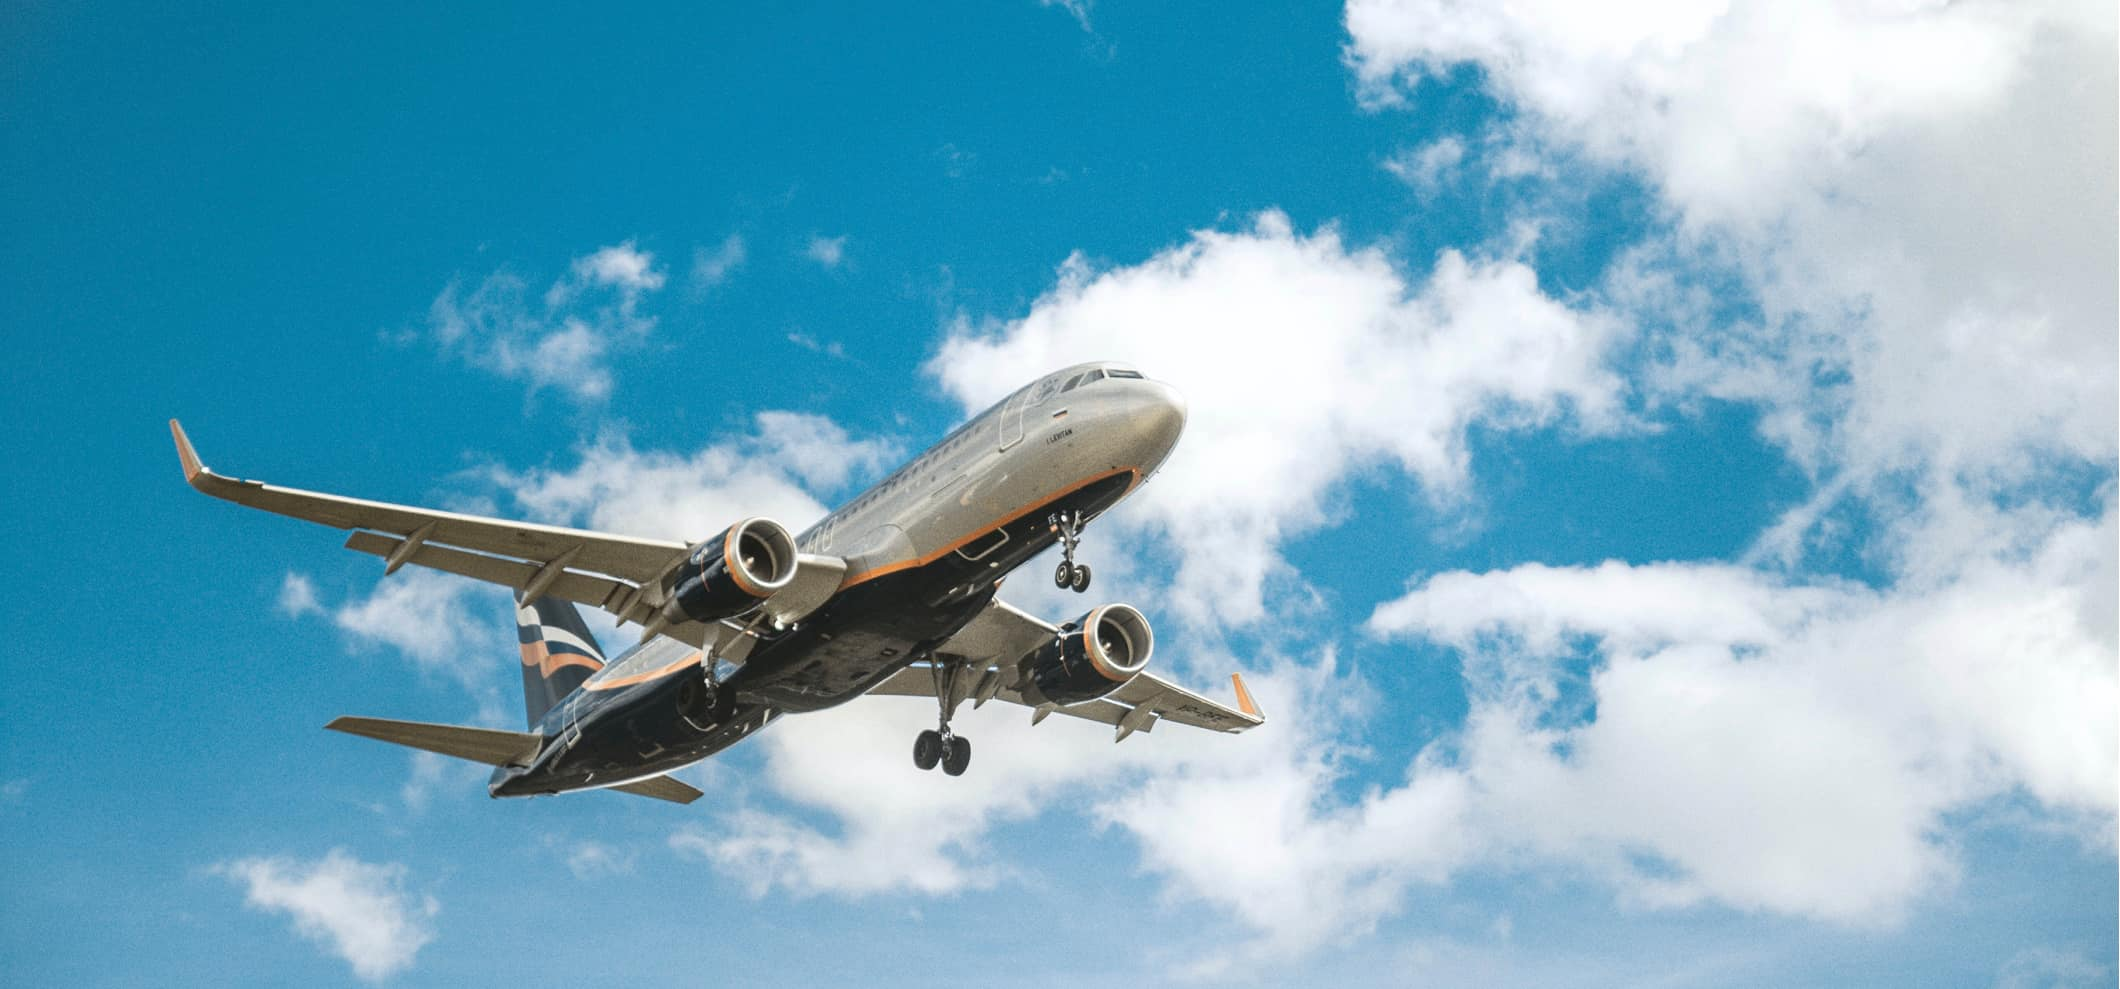 A commercial airplane landing at an airport on a bright summer day